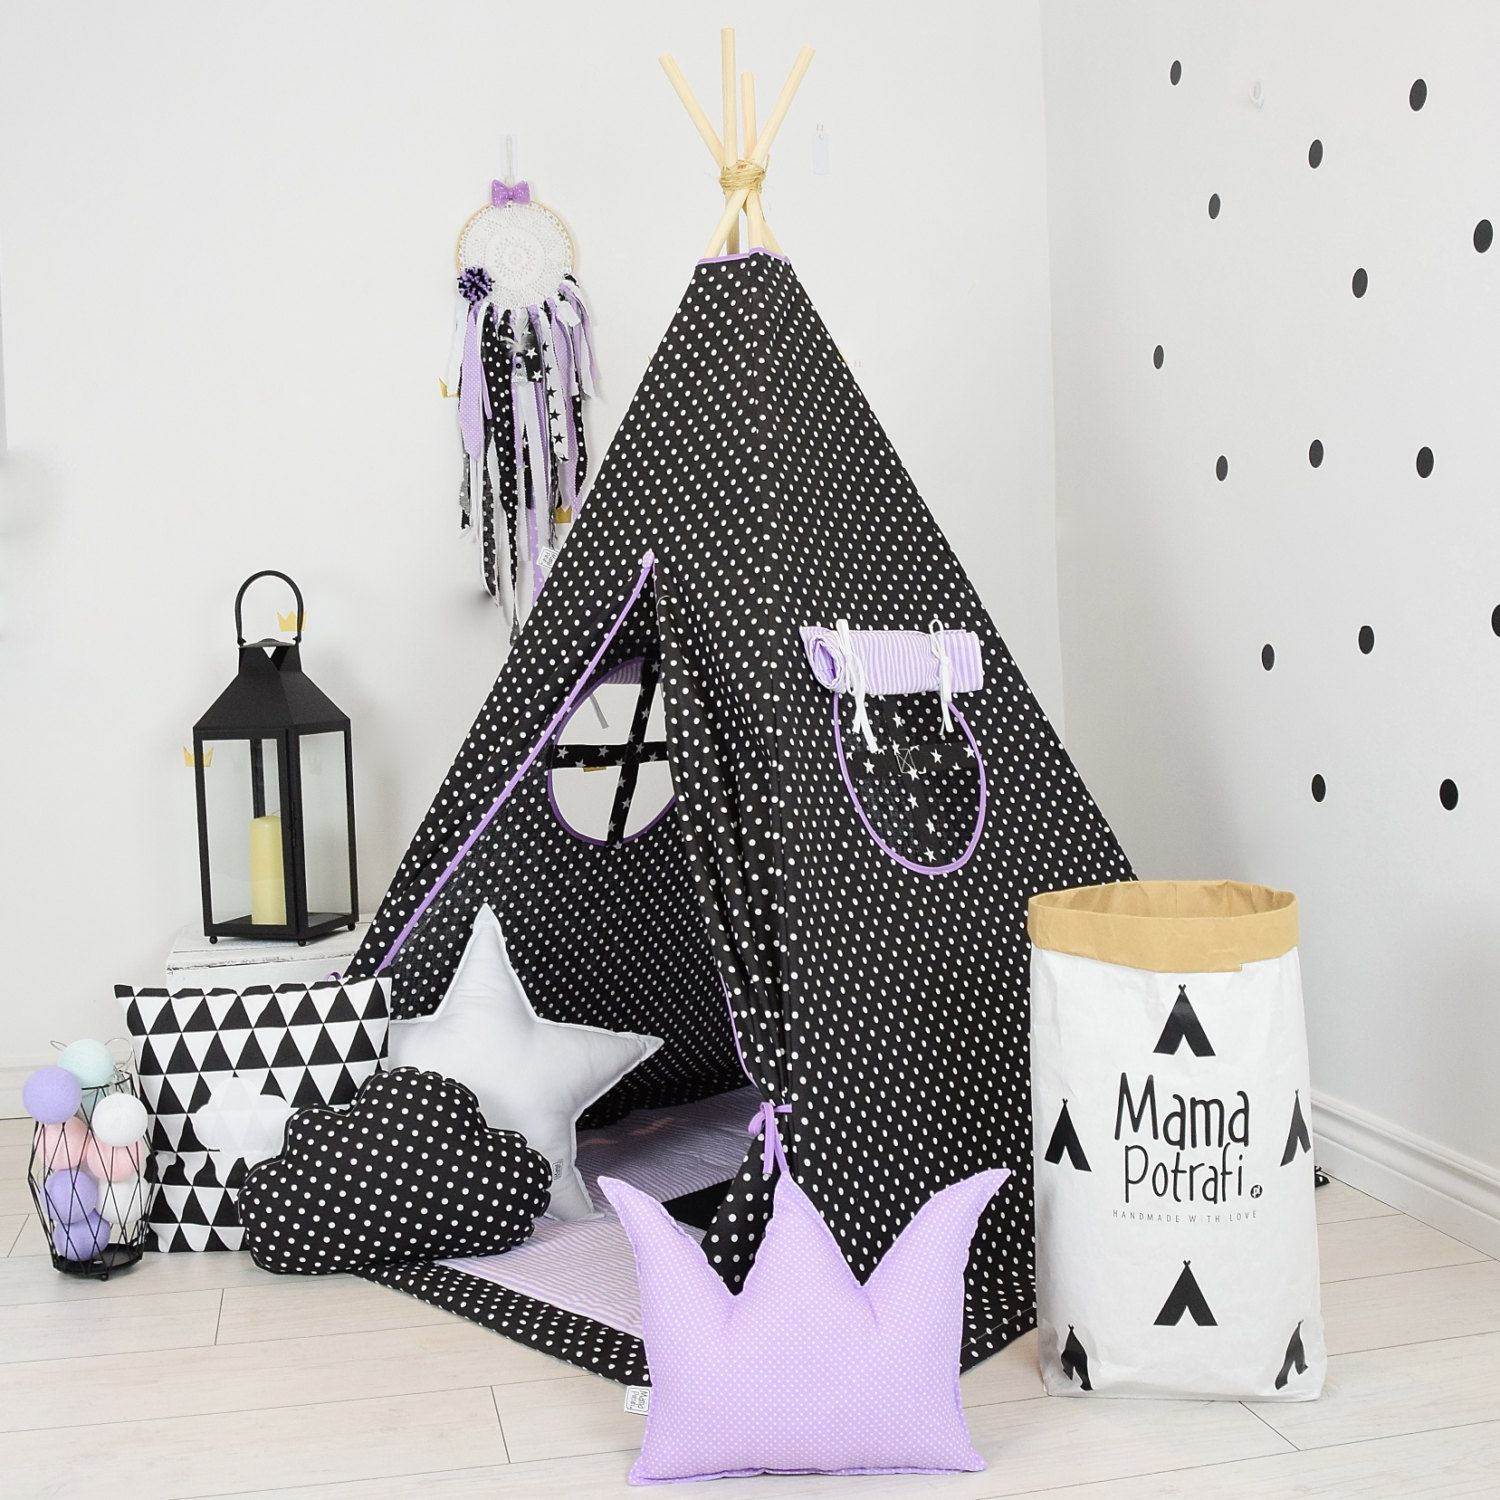 Childrens Tipi Toddler Teepee Tent Black Teepee Dotted Teepee